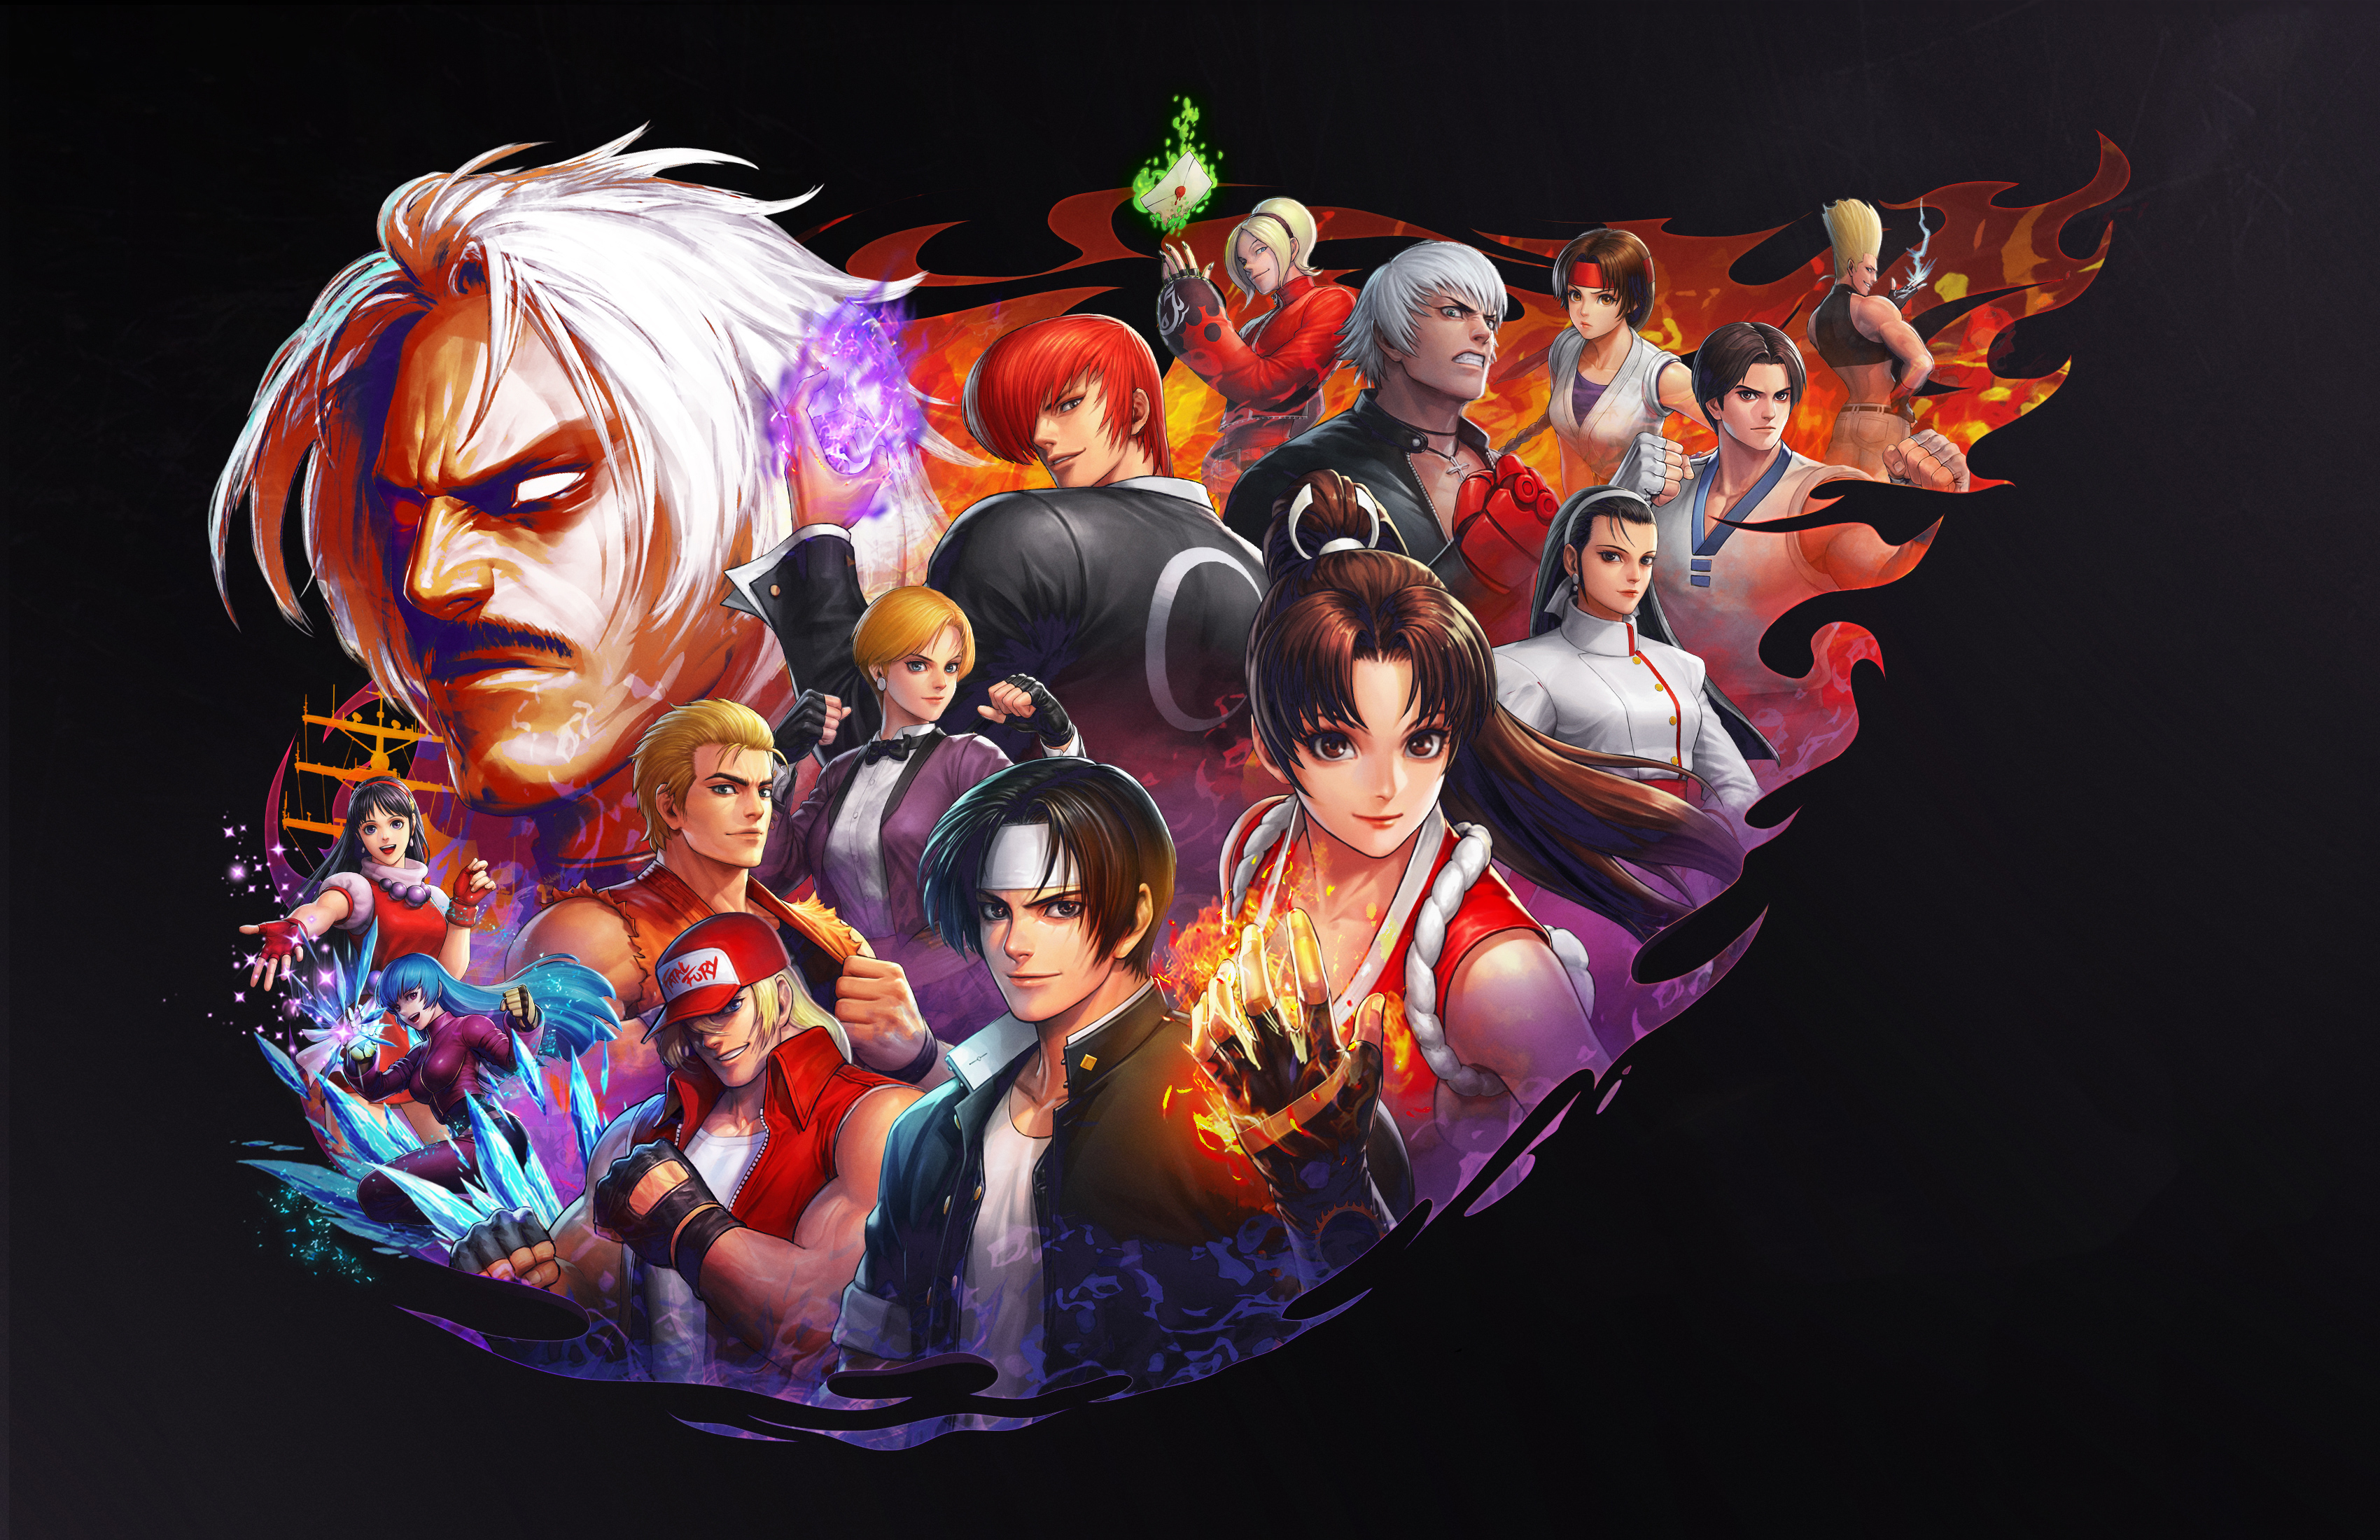 The King Of Fighters All Star Hd Games 4k Wallpapers